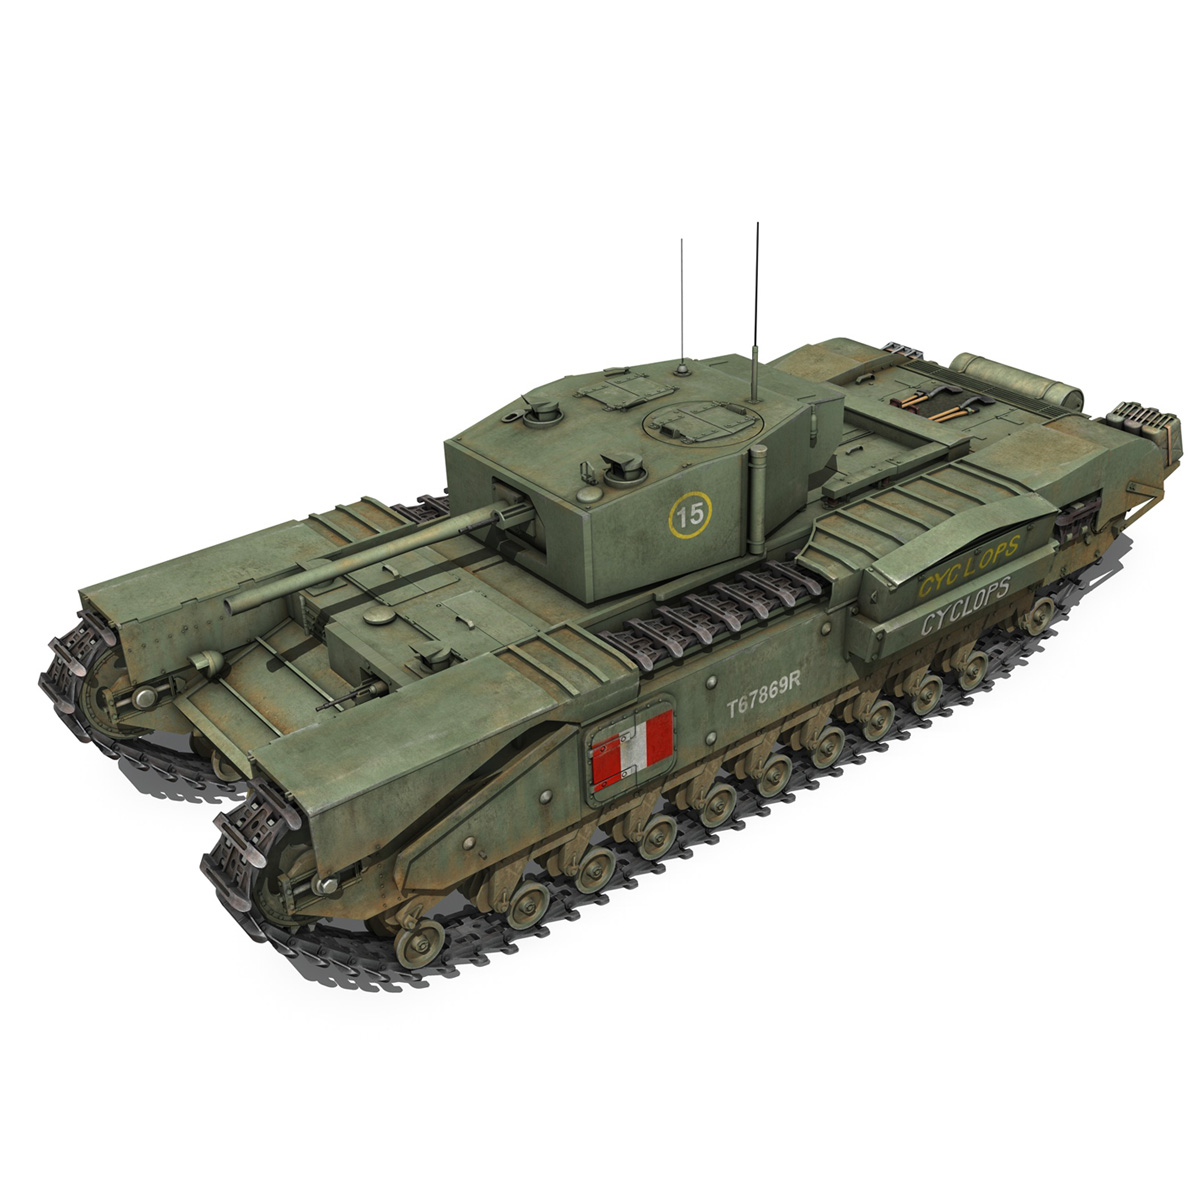 churchill mk.iii - cyclops 3d model 3ds fbx c4d lwo obj 270899